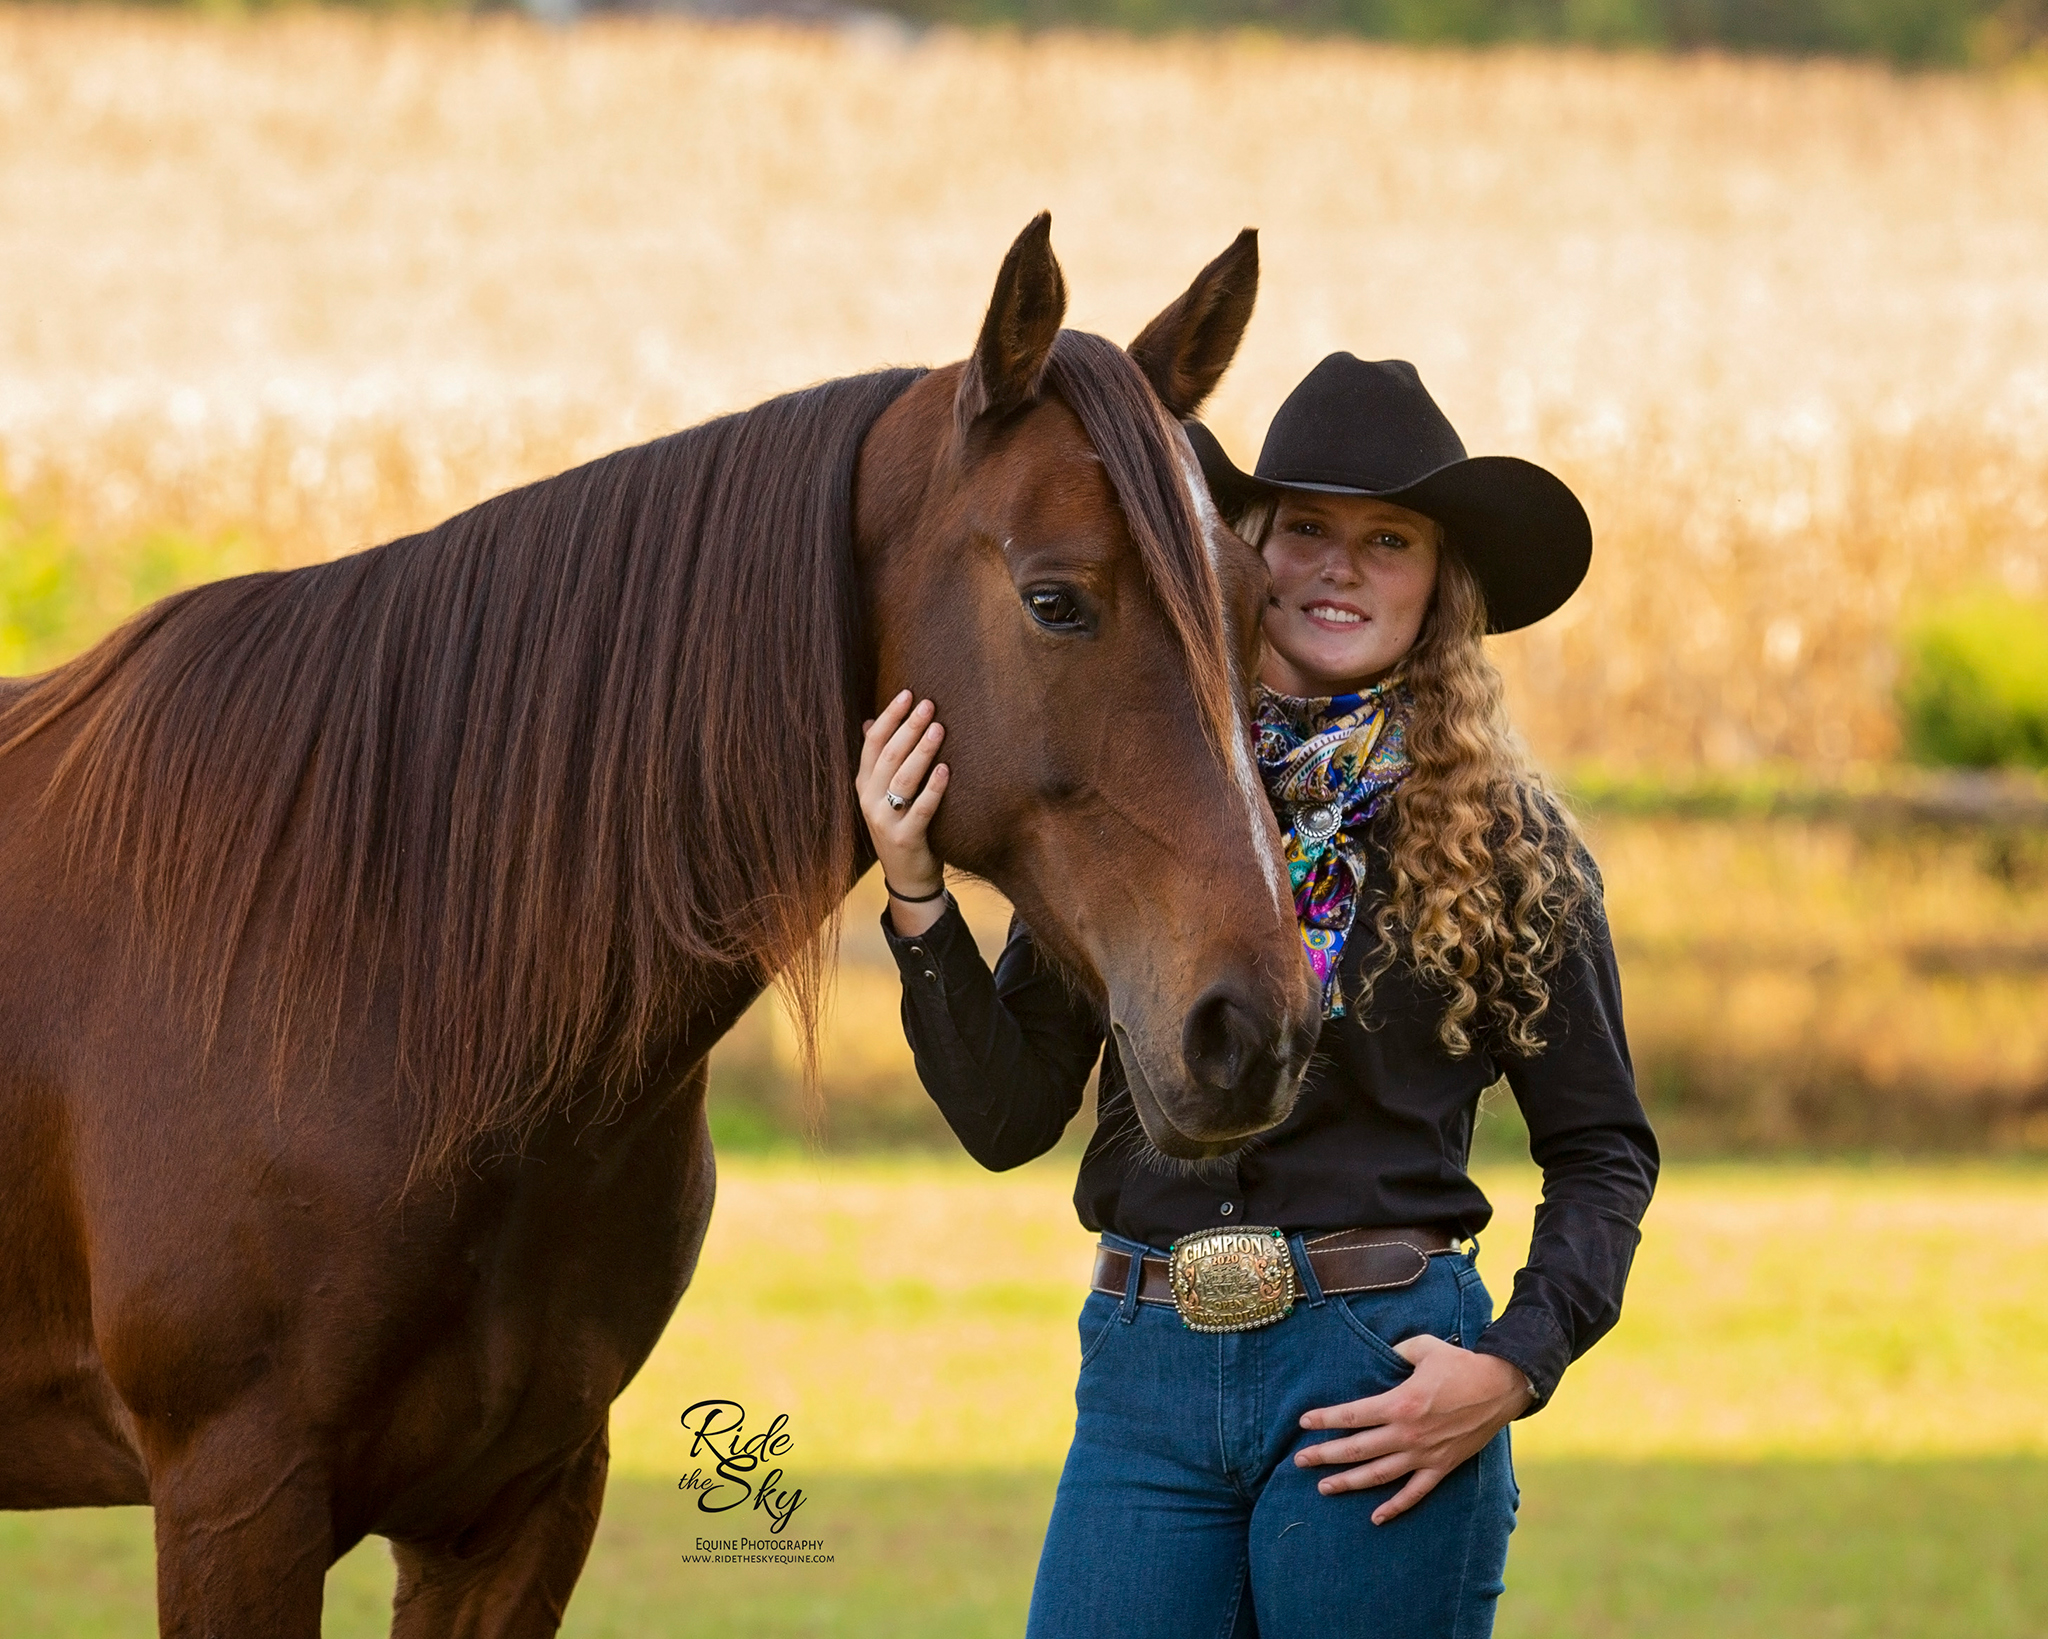 Girl and her horse pictured in Manchester Tennessee field